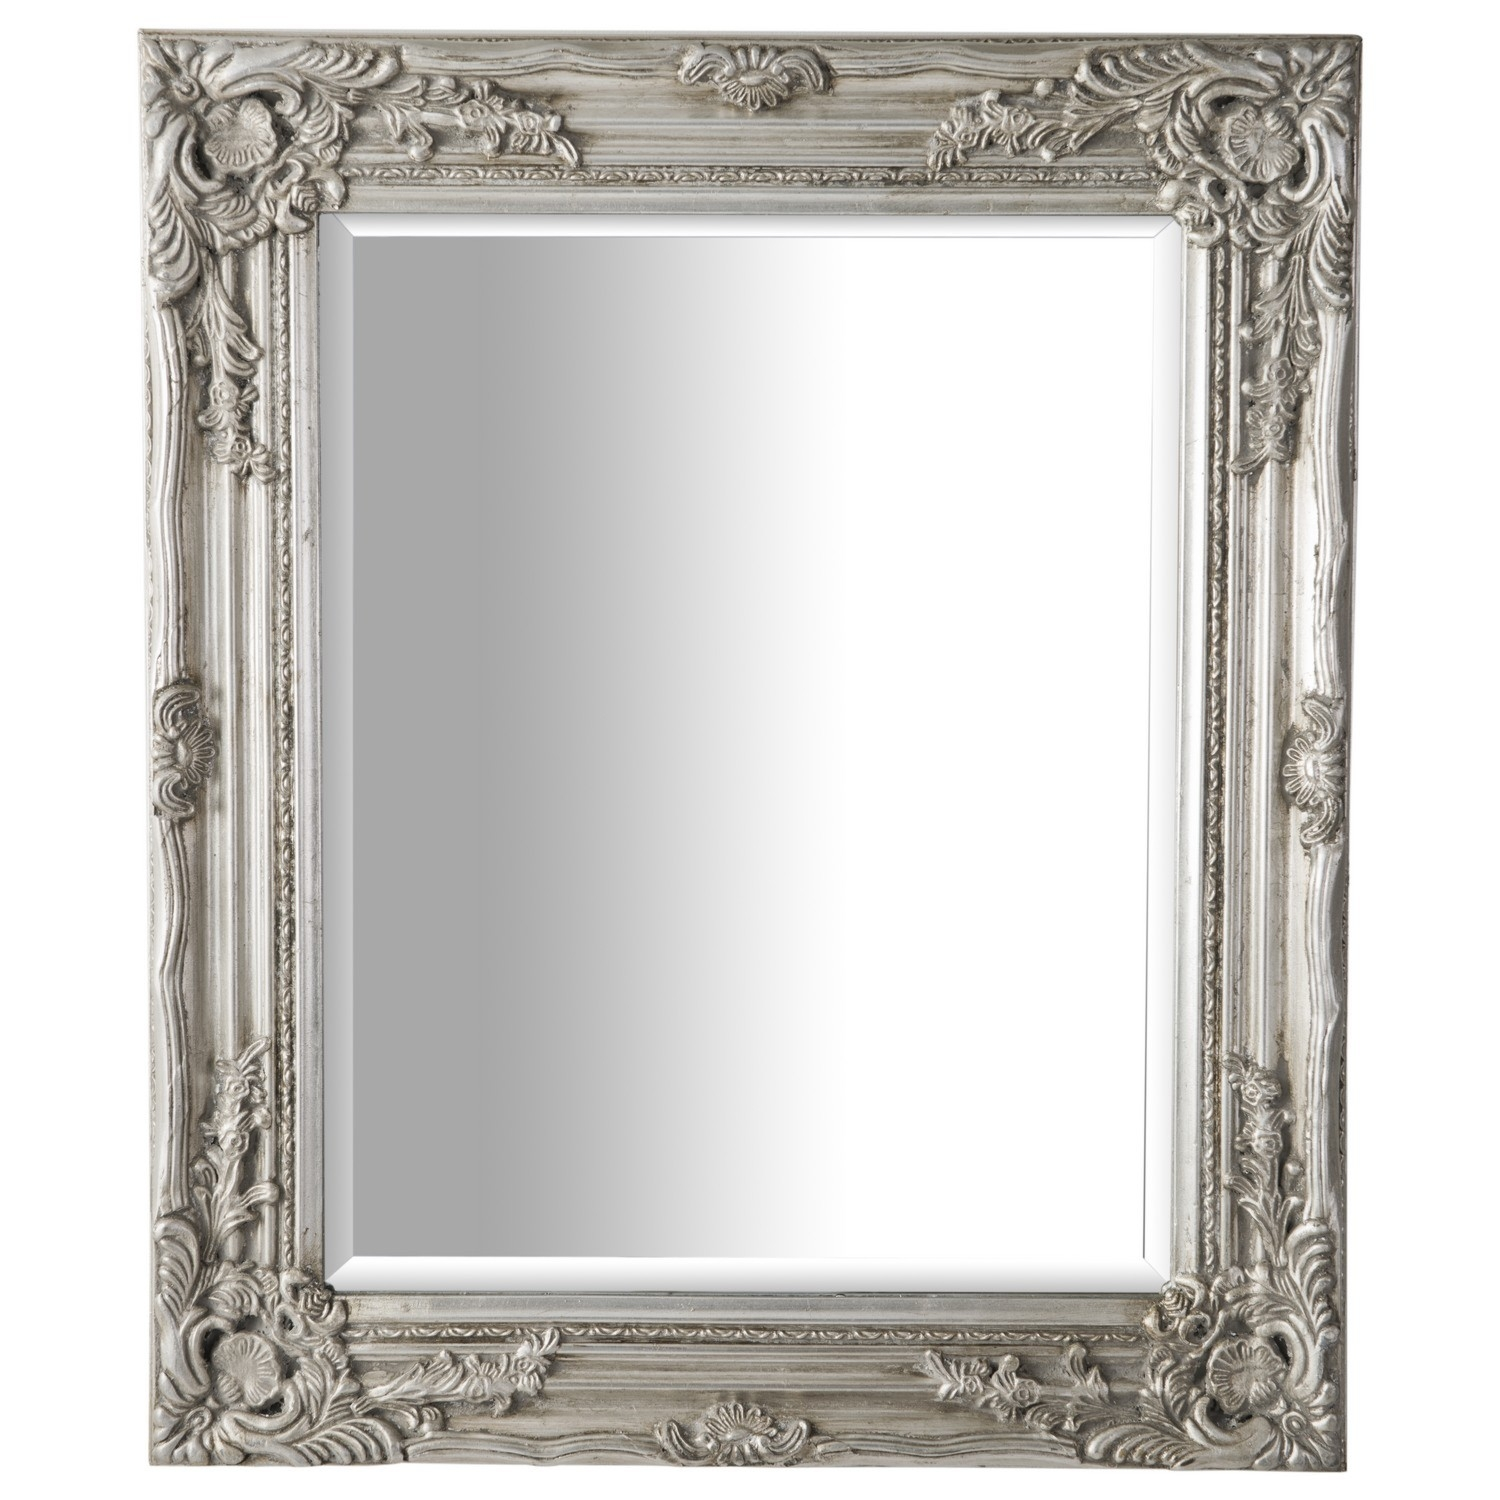 Antique Ornate Mirror Silver With Regard To Antique Ornate Mirror (Image 2 of 15)